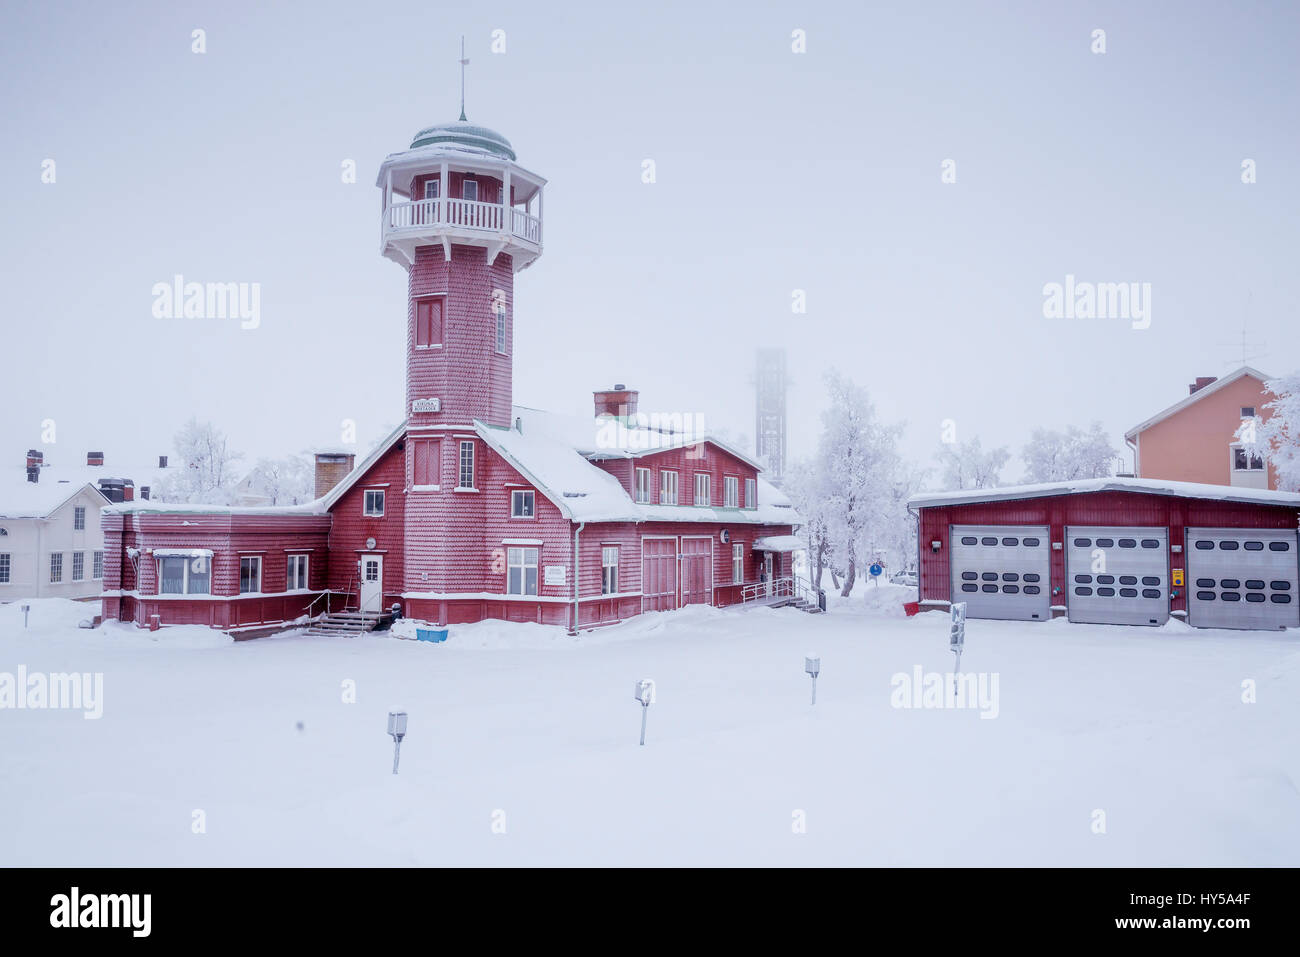 Sweden, Lapland, Kiruna, Brick building with tower against clear sky - Stock Image